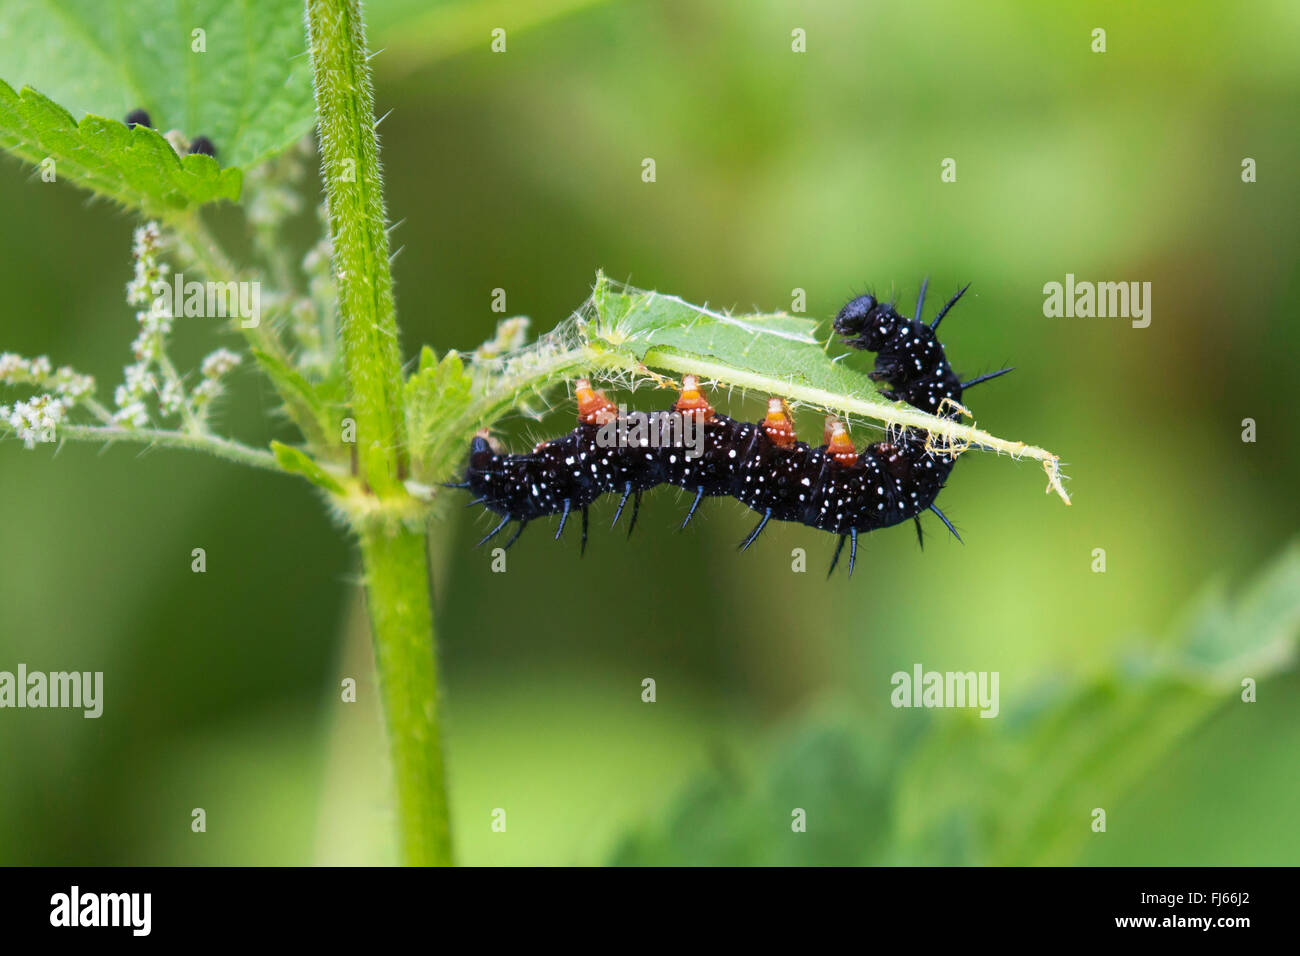 Peacock butterfly, European Peacock (Inachis io, Nymphalis io), caterpillar feeds on nettle leaf, Germany, Bavaria - Stock Image